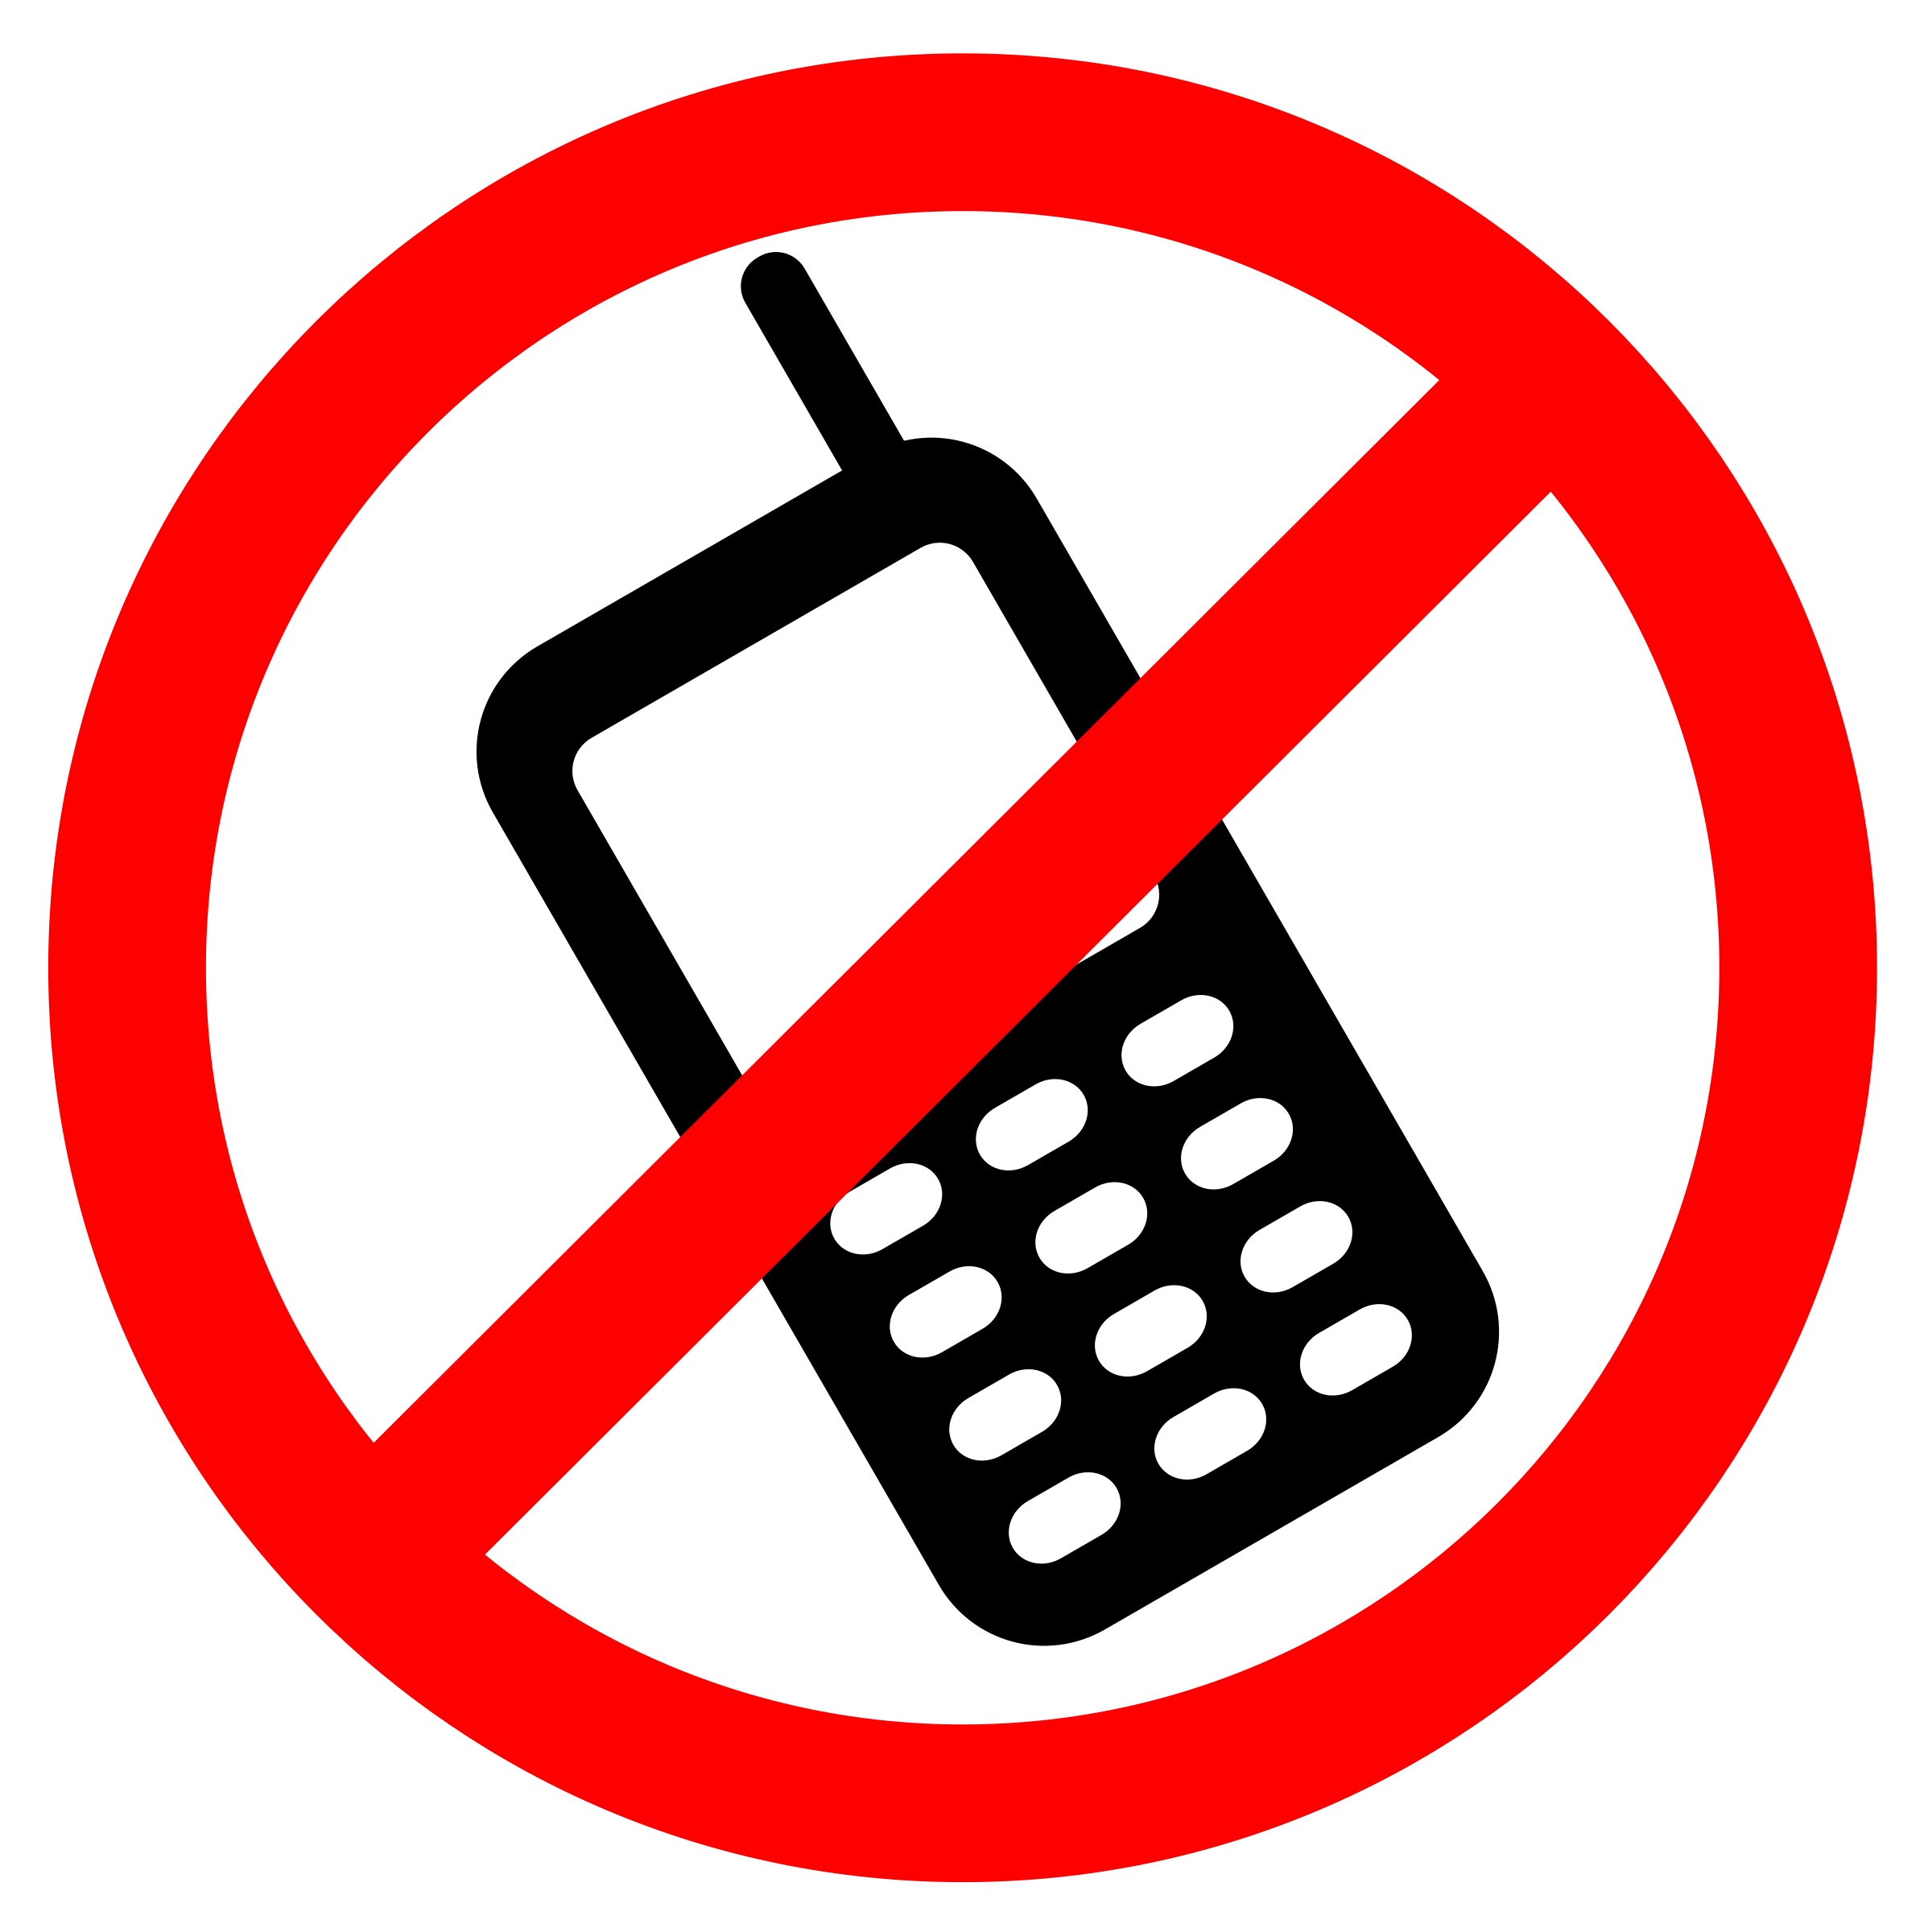 clipart no cell phones allowed rh openclipart org no cell phone use clip art no mobile phone sign clip art